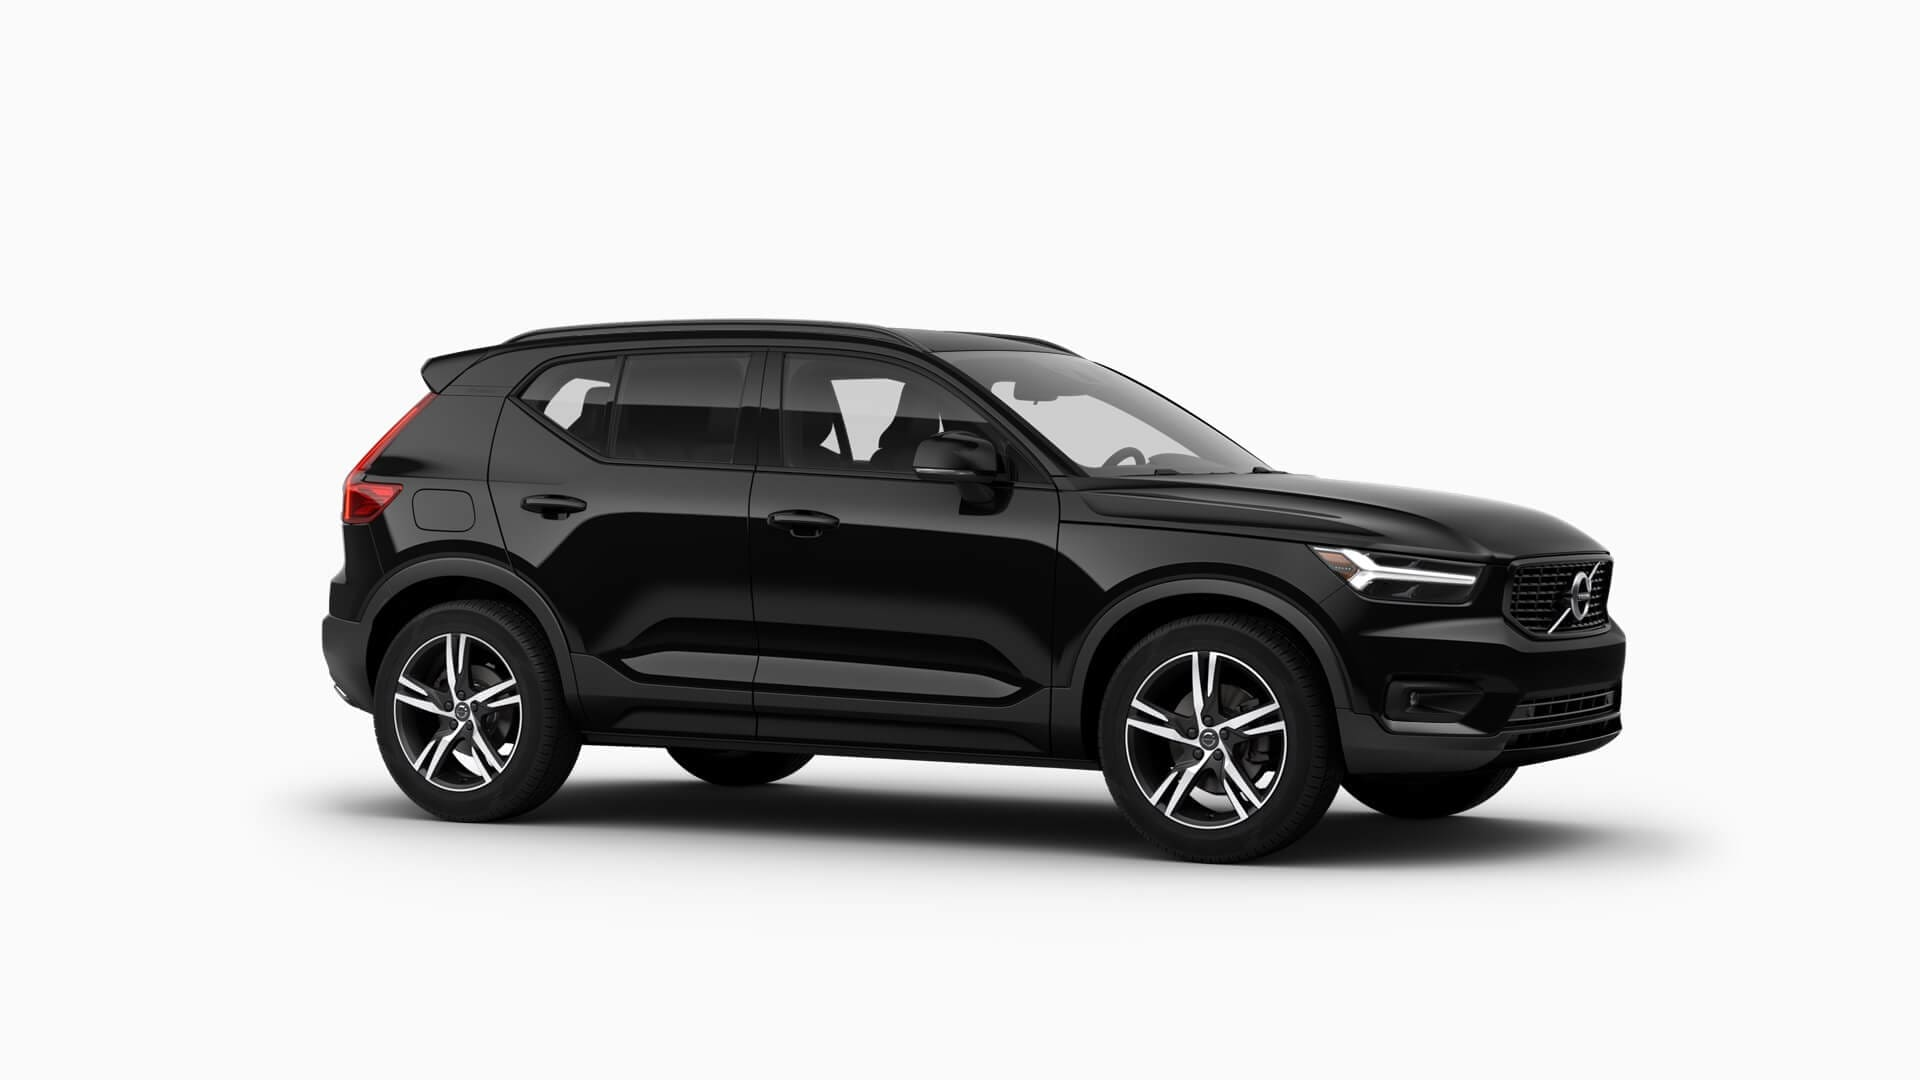 Black 2019 Volvo XC40 R-Design exterior features